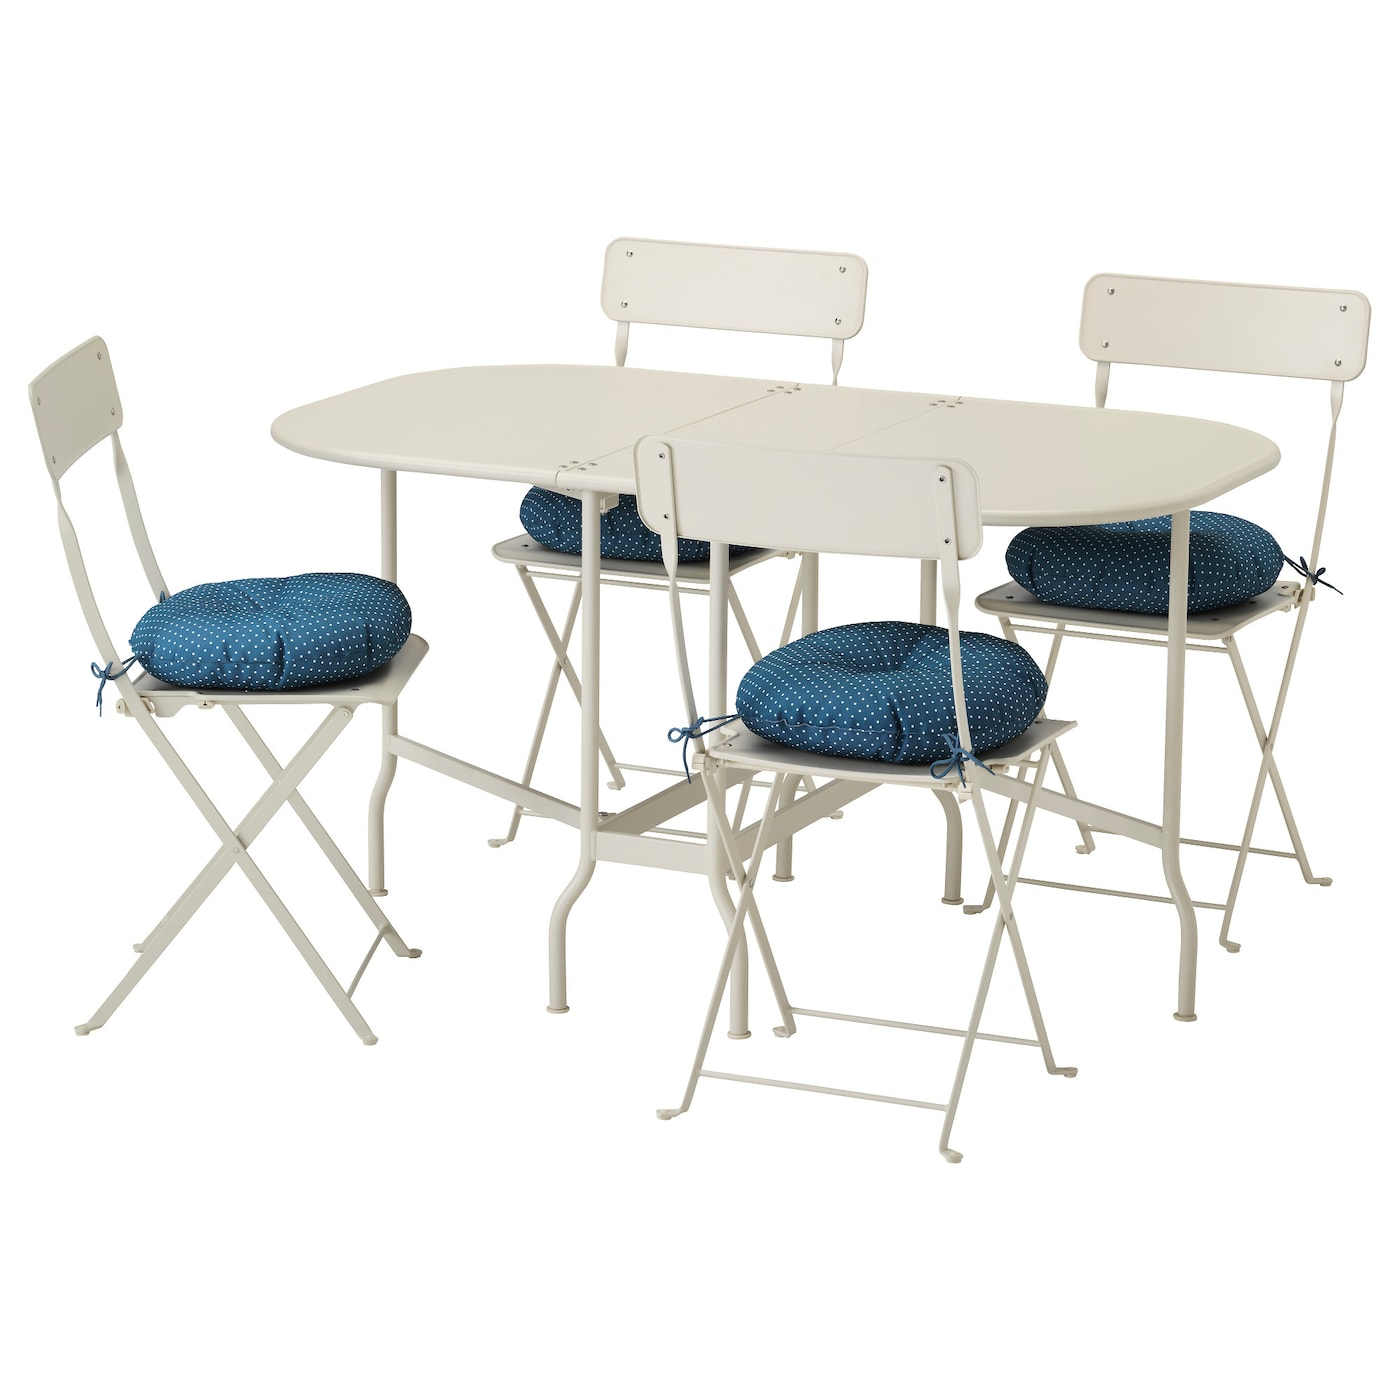 saltholmen table 4 chaises pliantes ext rieur beige ytter n bleu ikea. Black Bedroom Furniture Sets. Home Design Ideas